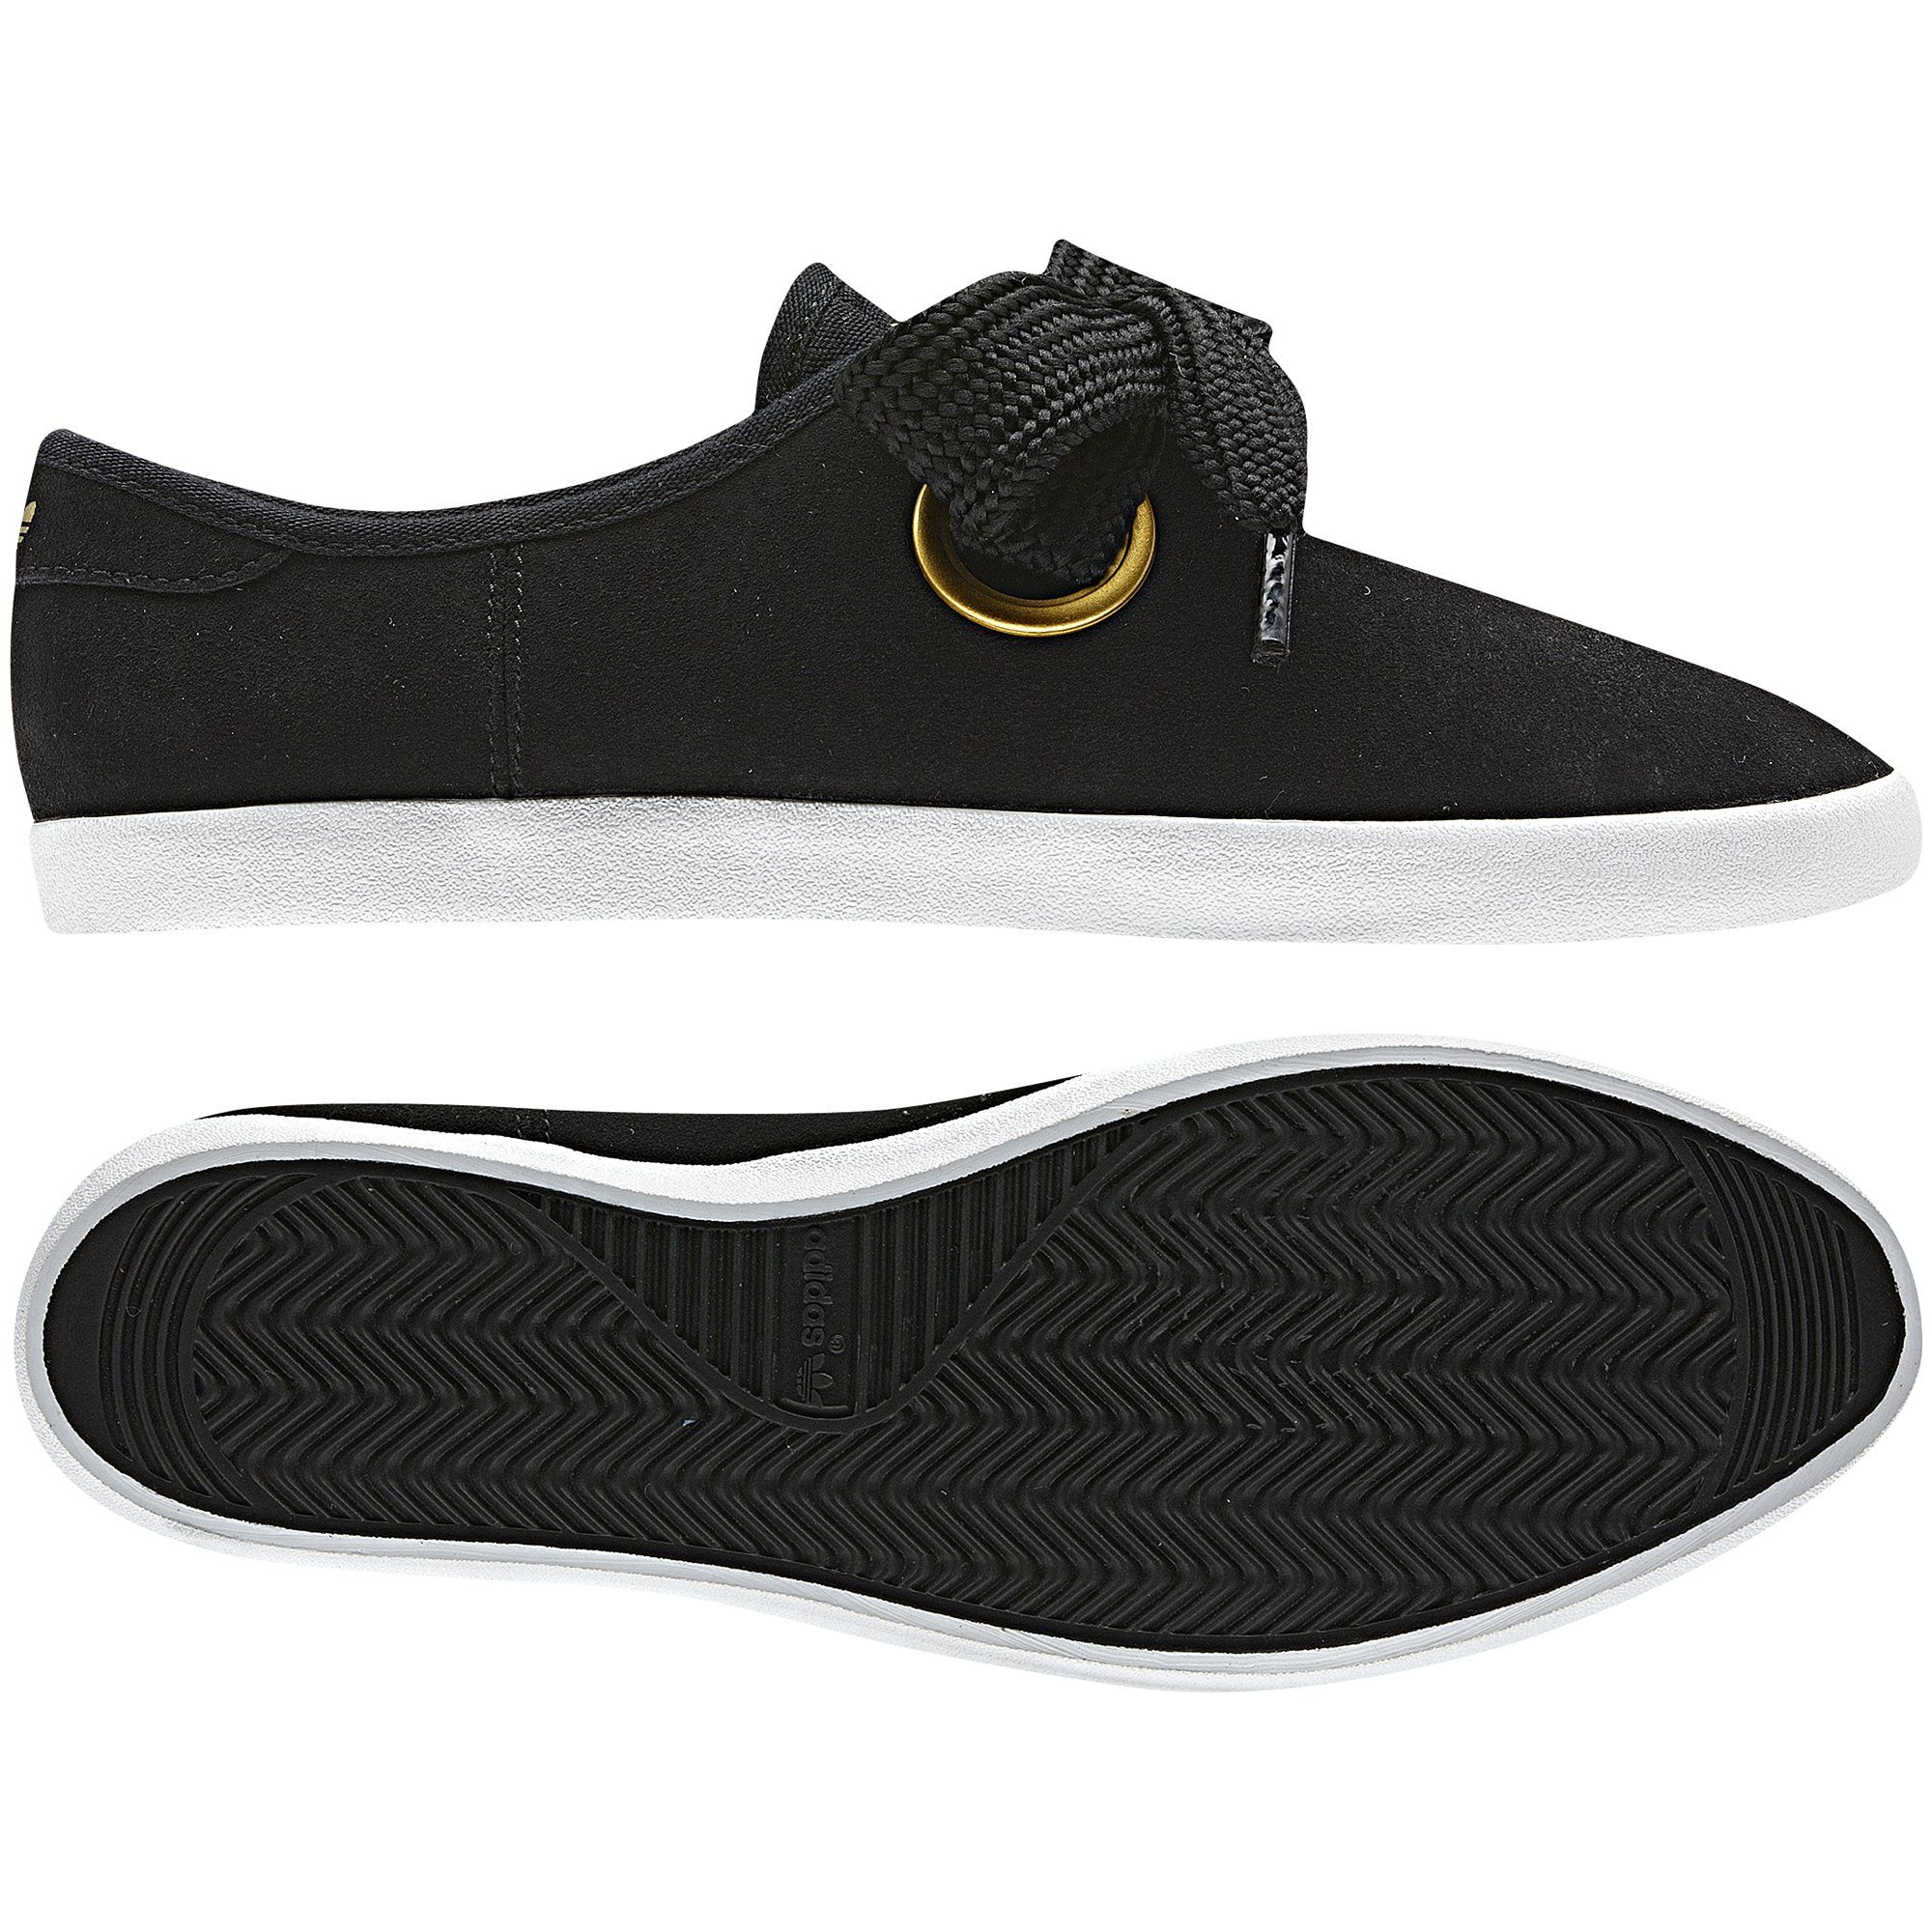 Cheap Vans Shoes For Sale Online, Shop Up To 50% Off Adidas